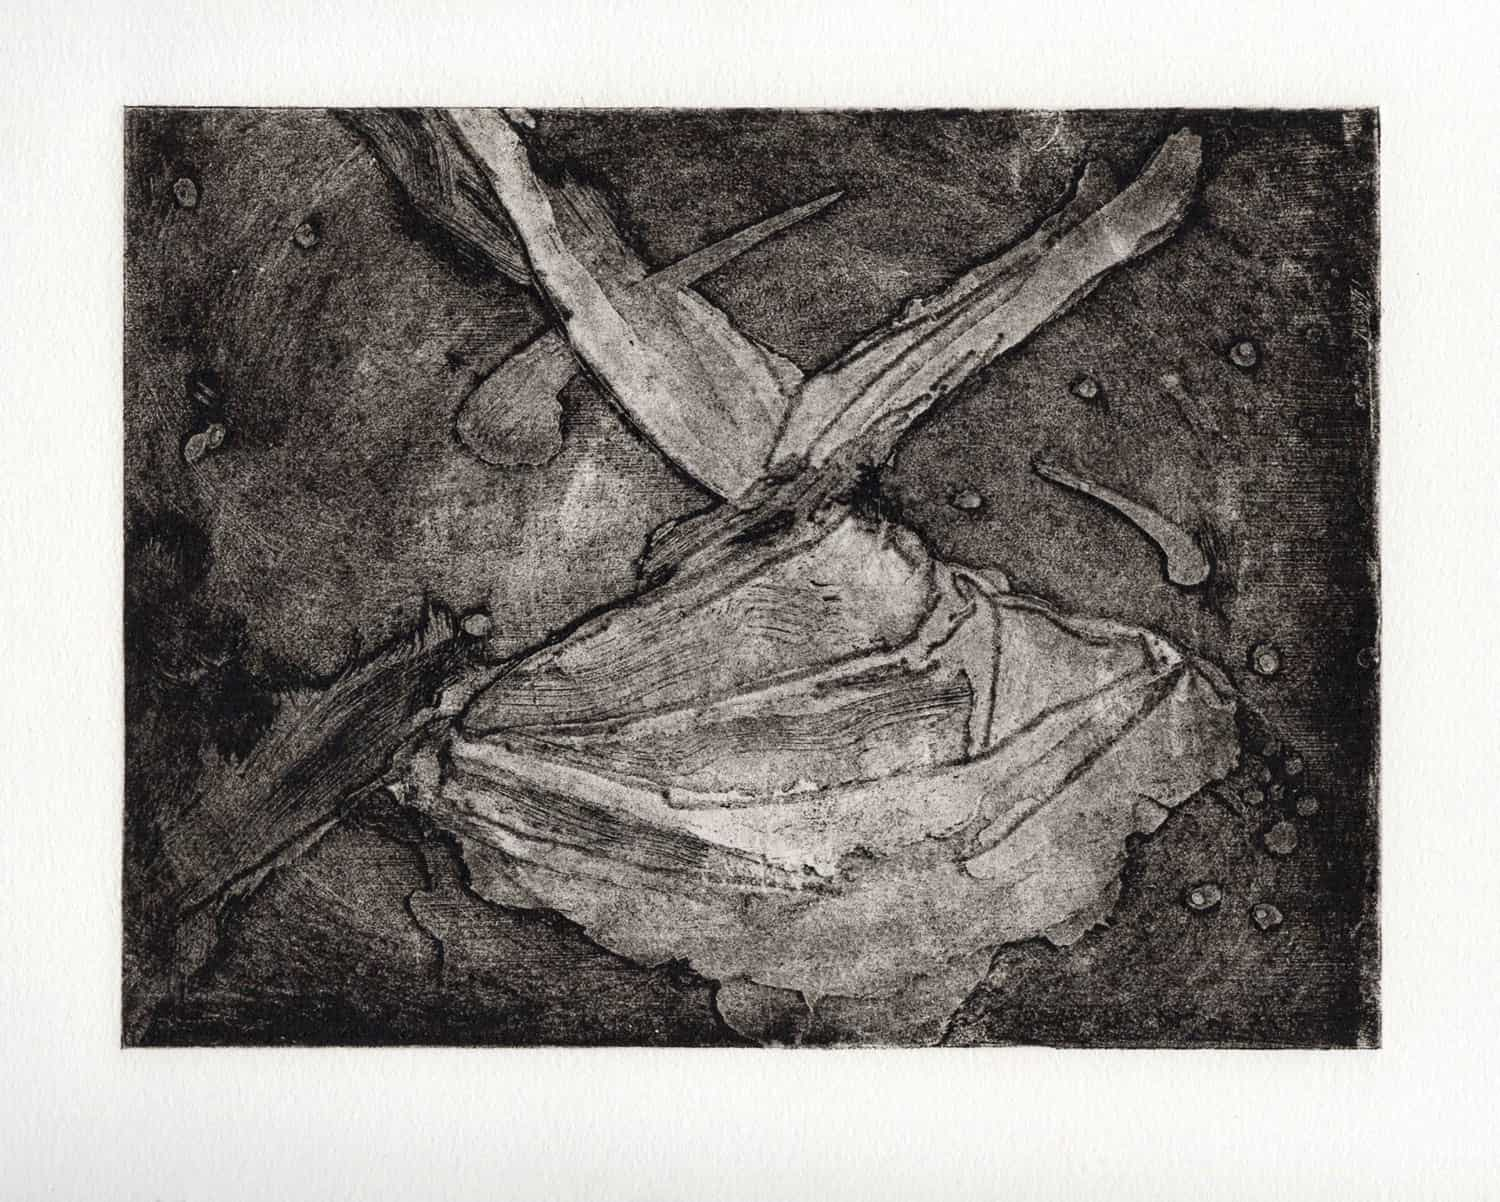 One of the carborundum prints Claudine Metrick was able to realize through a Kickstarter campaign